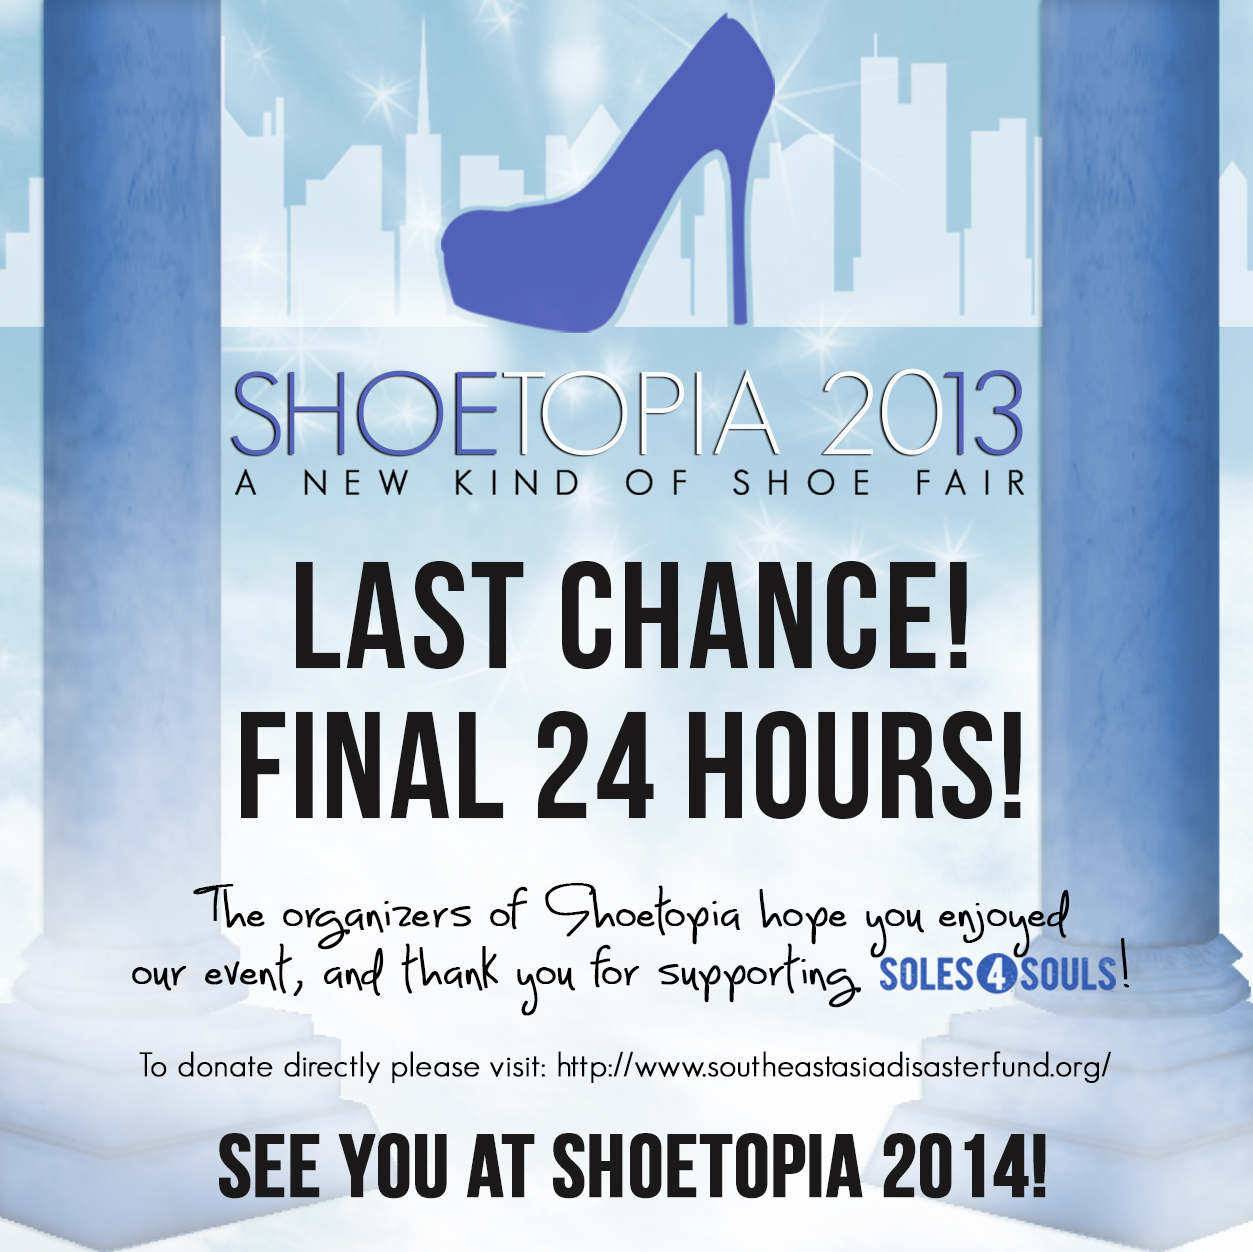 Last Chance to Visit SHOETOPIA 2013!